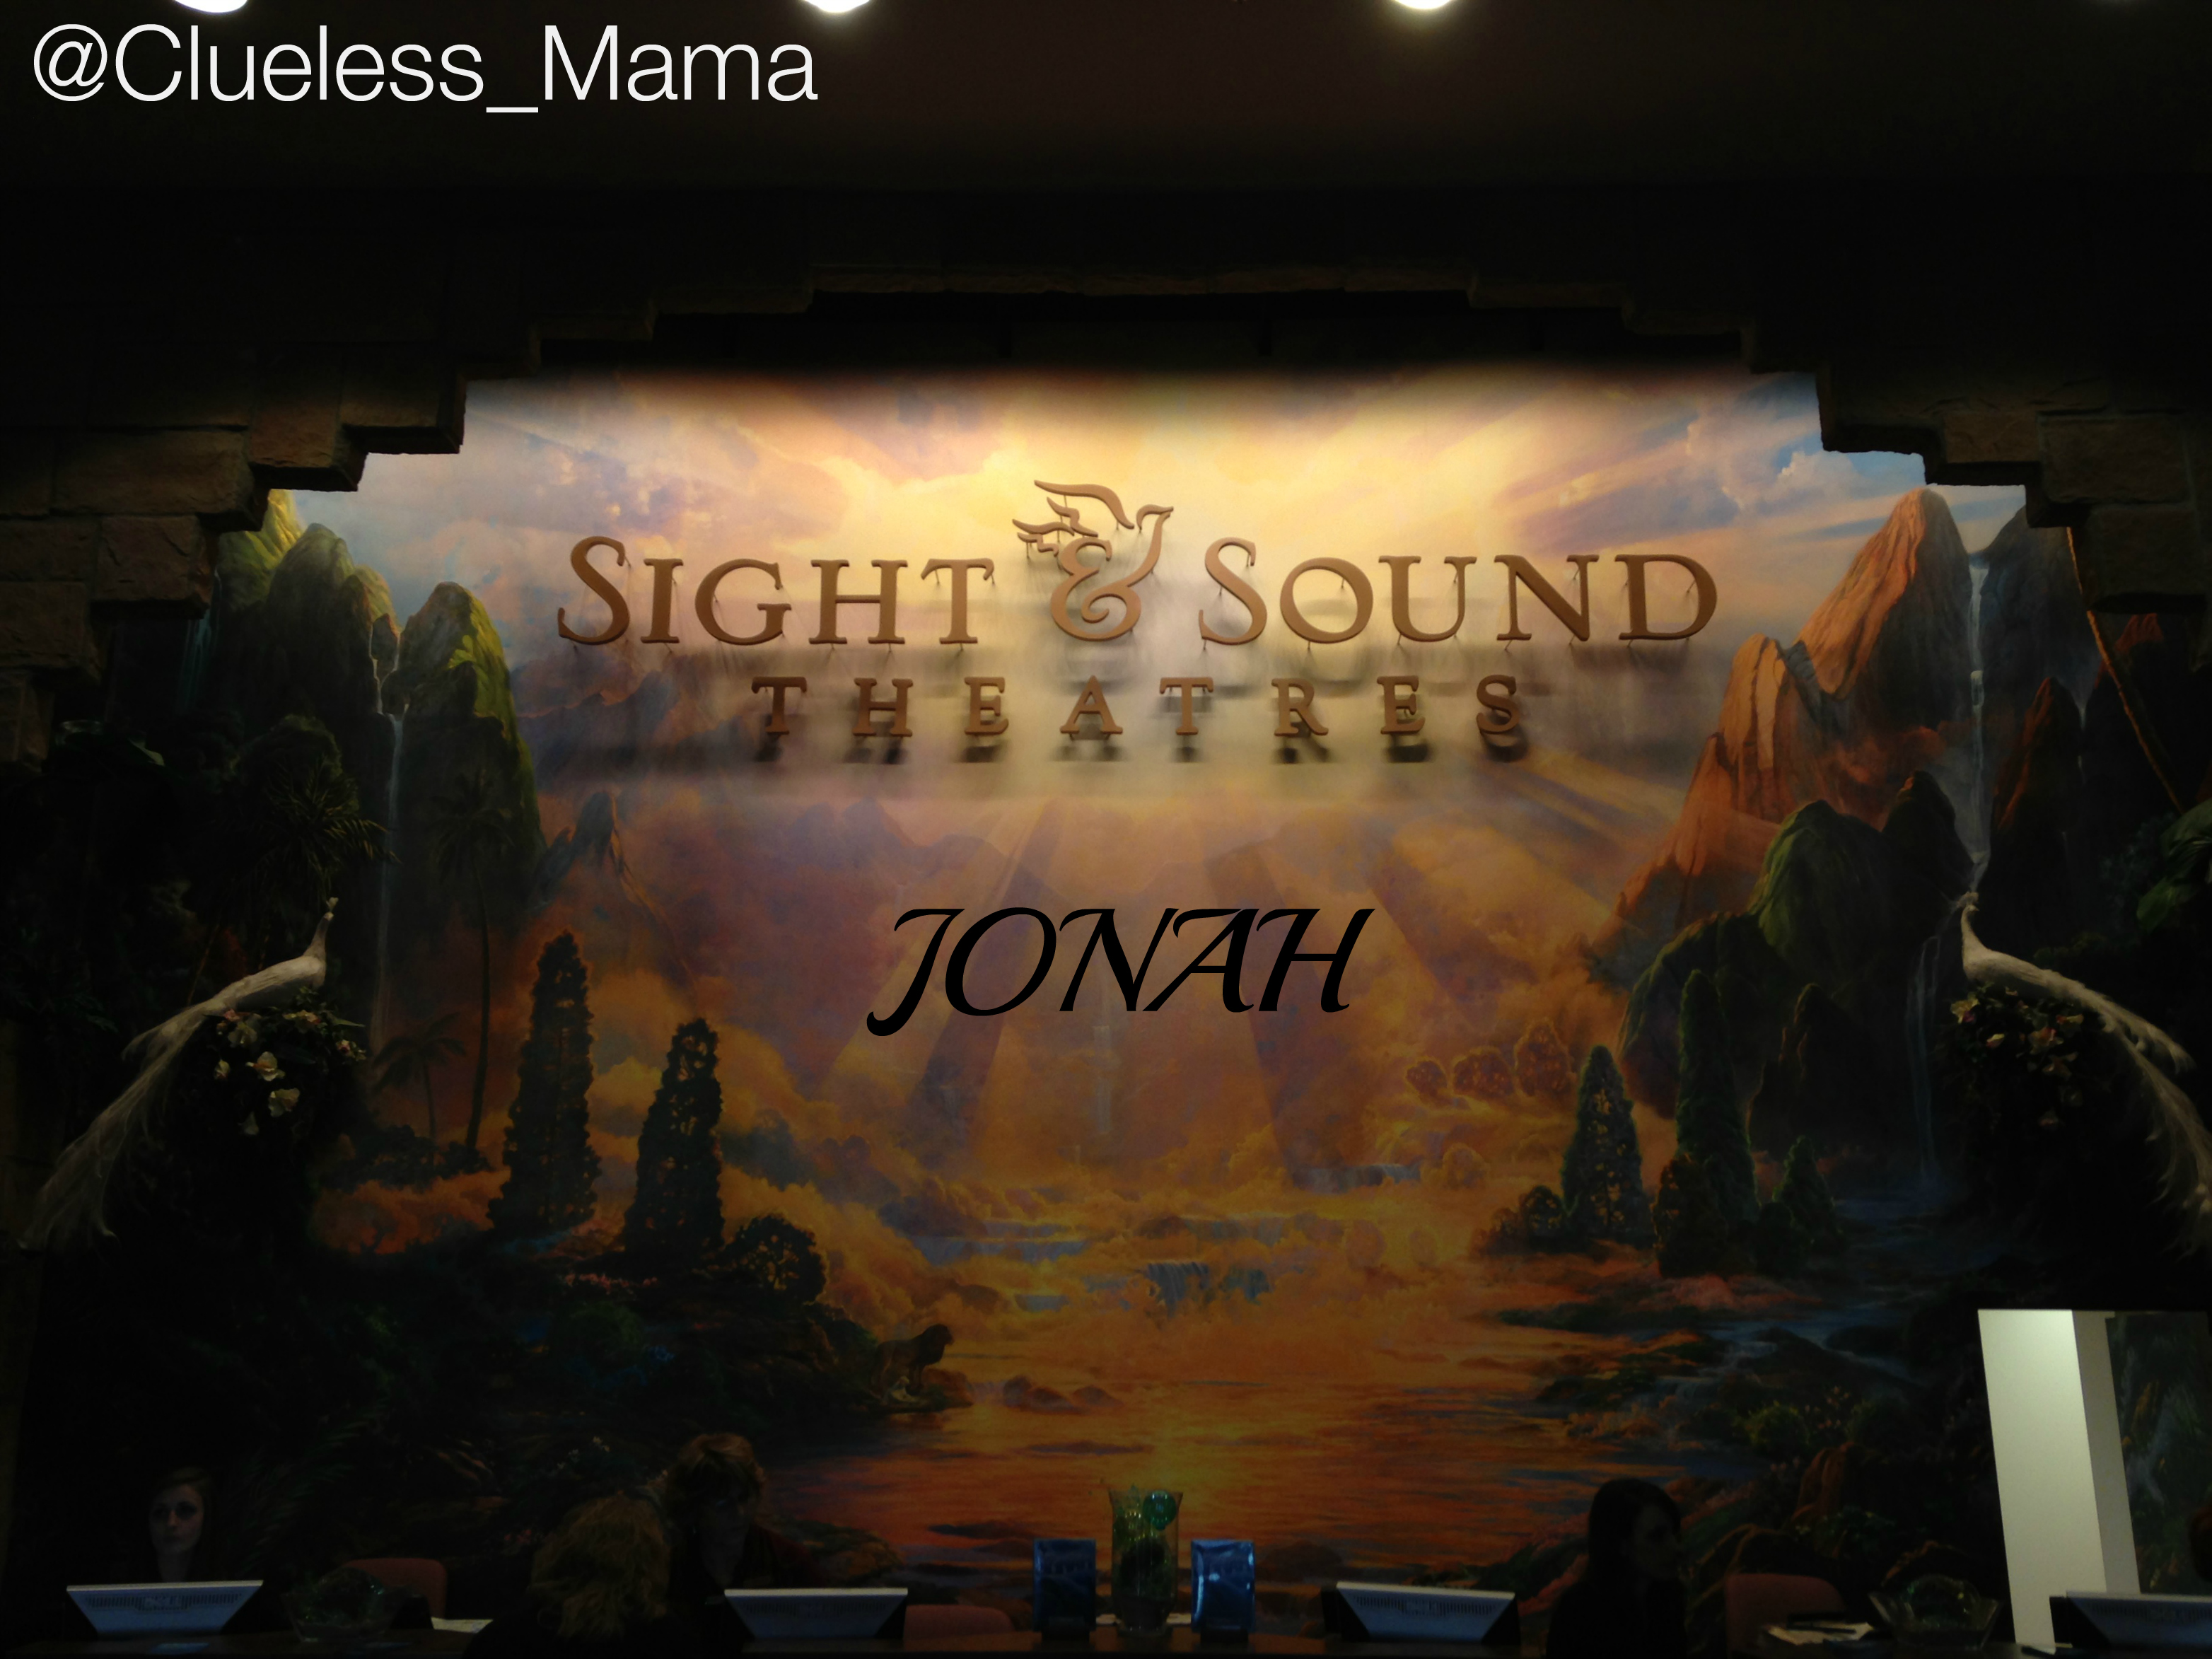 Sight & Sound Theatres Jonah